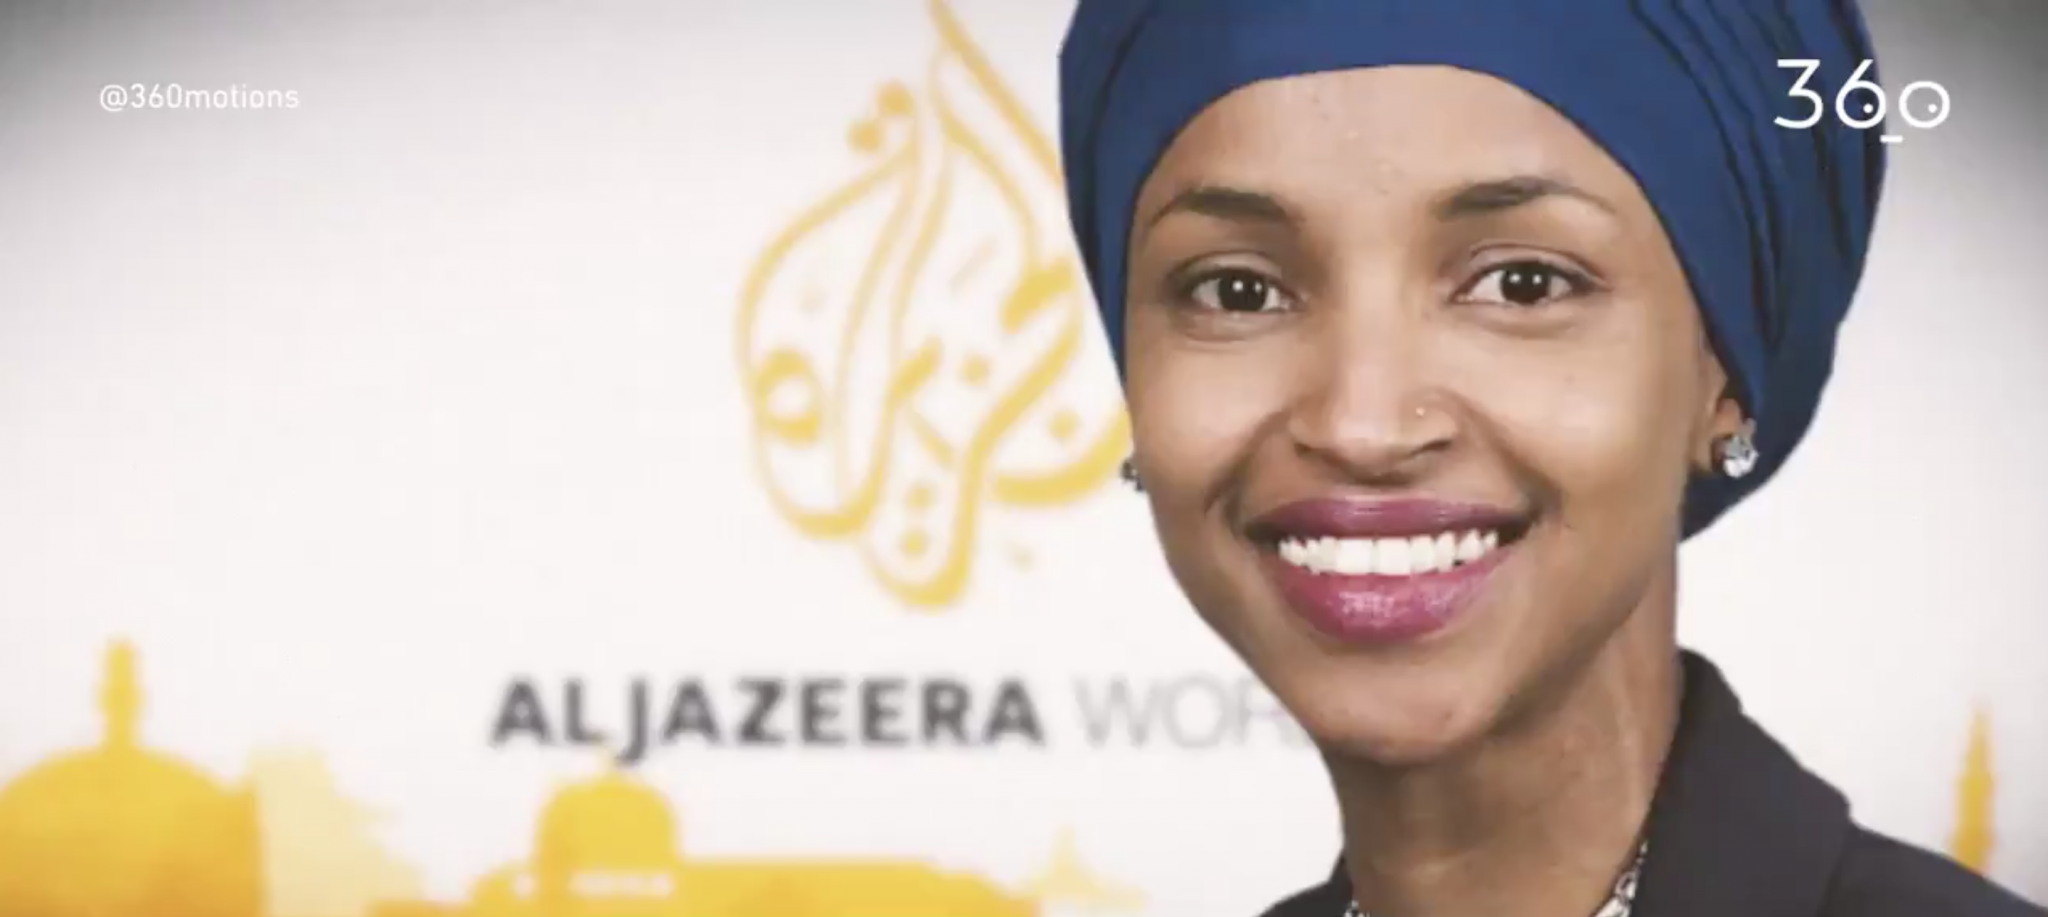 Qatari Media's Promotion of Rep. Ilhan Omar is Alarming